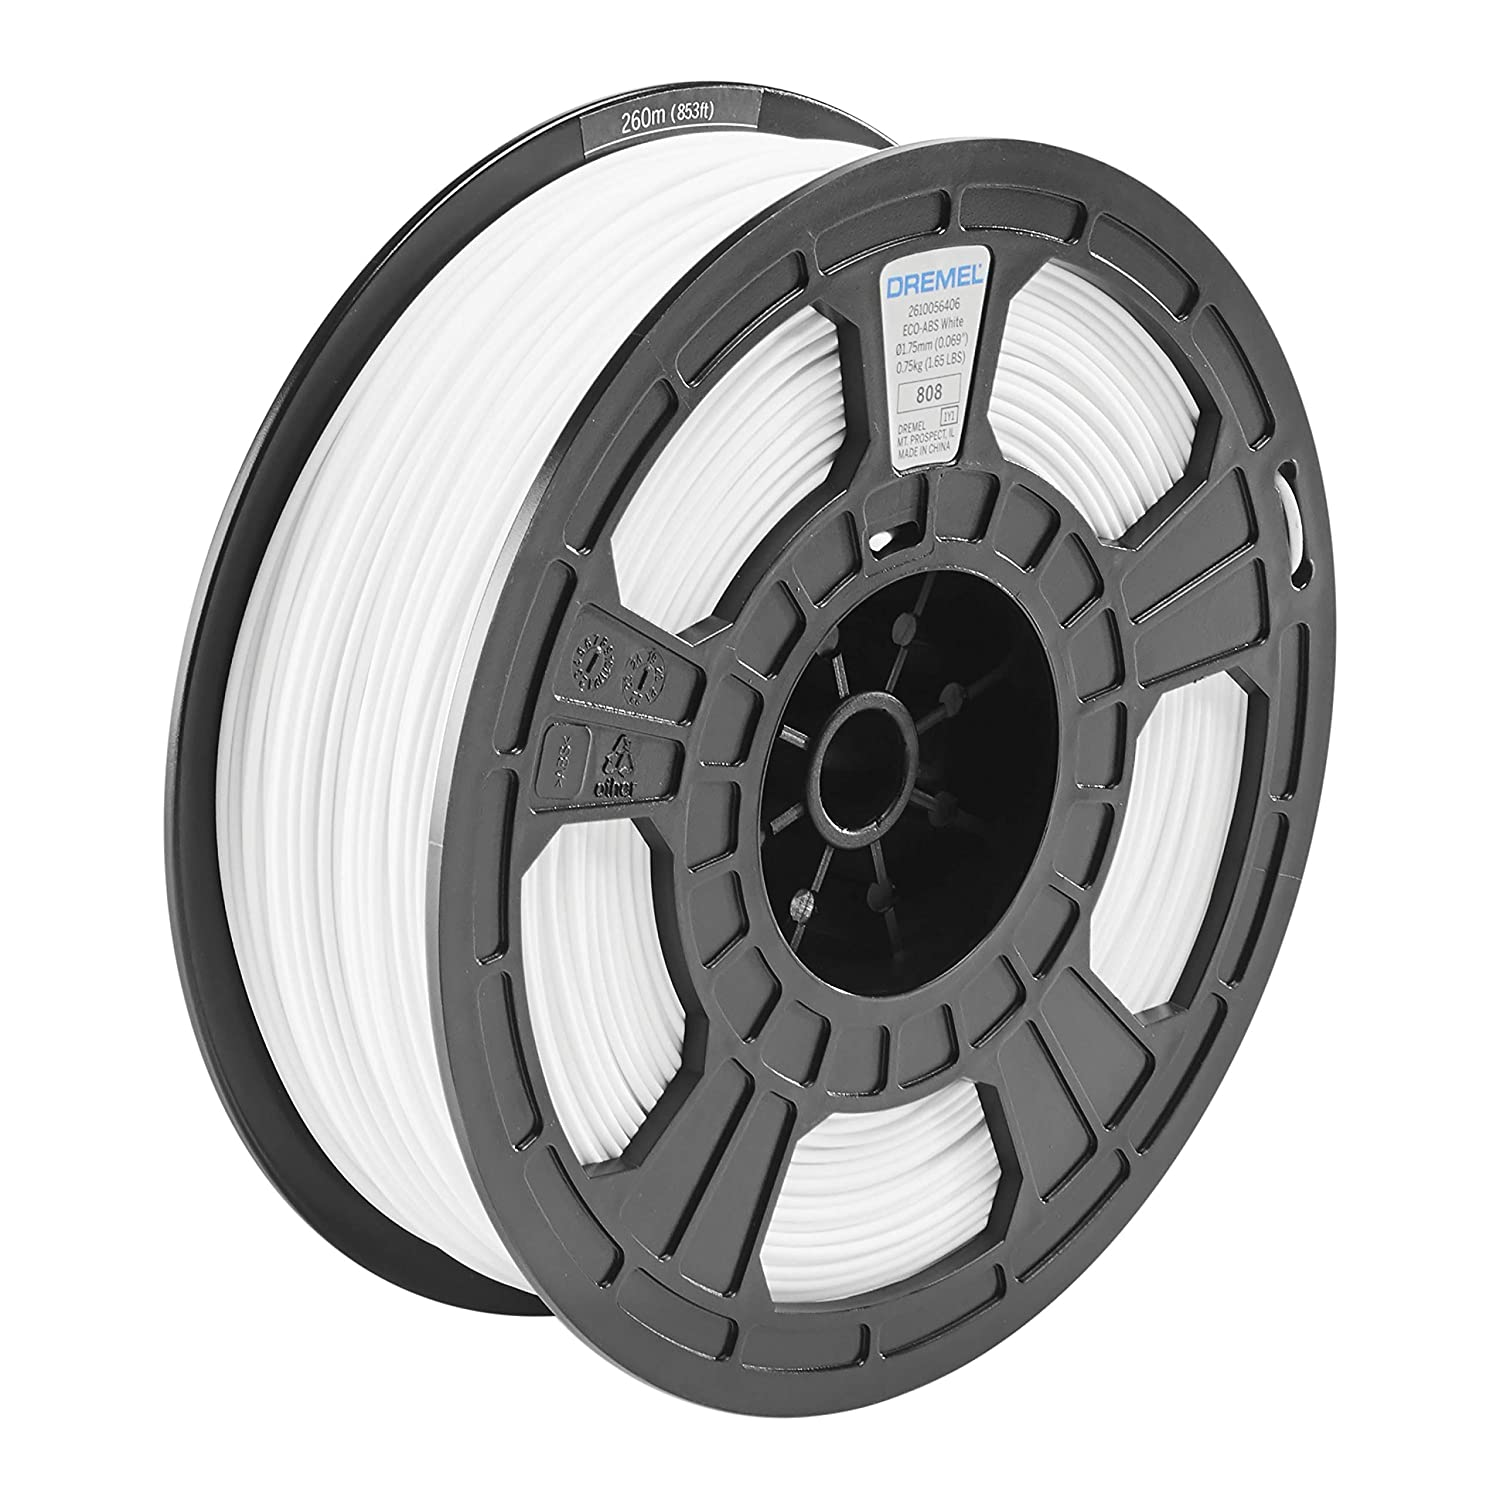 Dremel DigiLab ECO-WHI-01 3D Printer Filament, 1.75 mm Diameter, 0.75 kg Spool Weight, Color White, RFID Enabled, New Formula and 50 Percent More per Spool